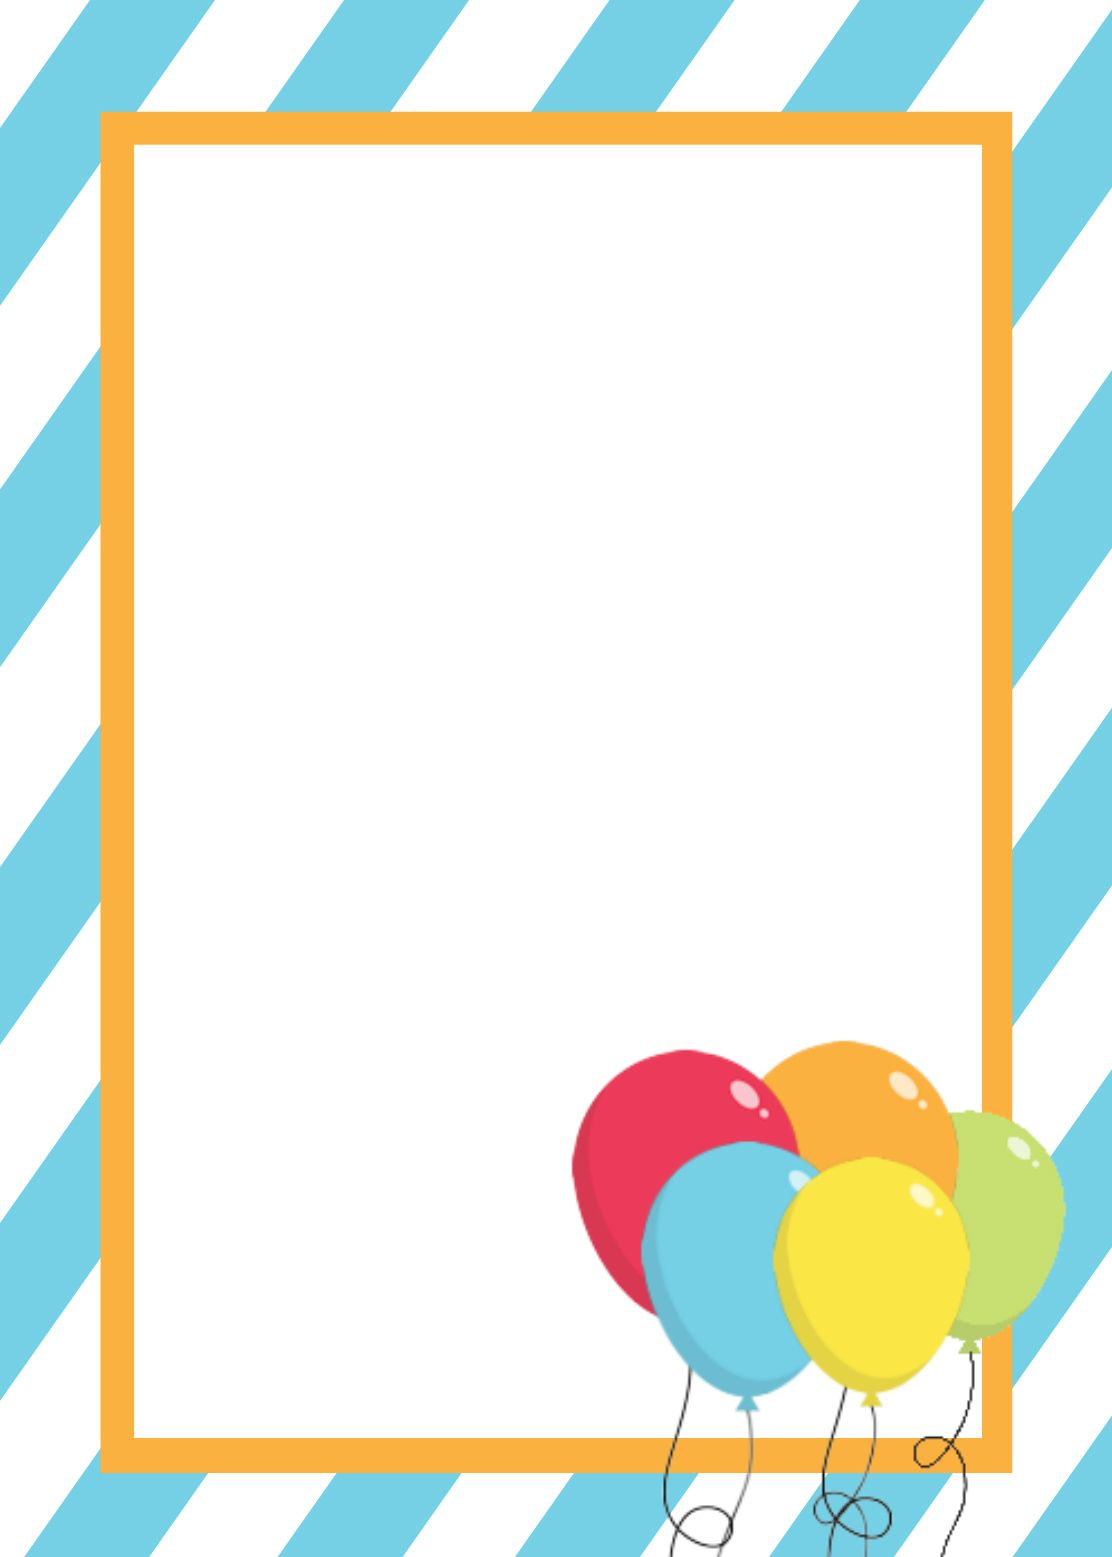 free birthday invitation templates - Free Birthday Templates